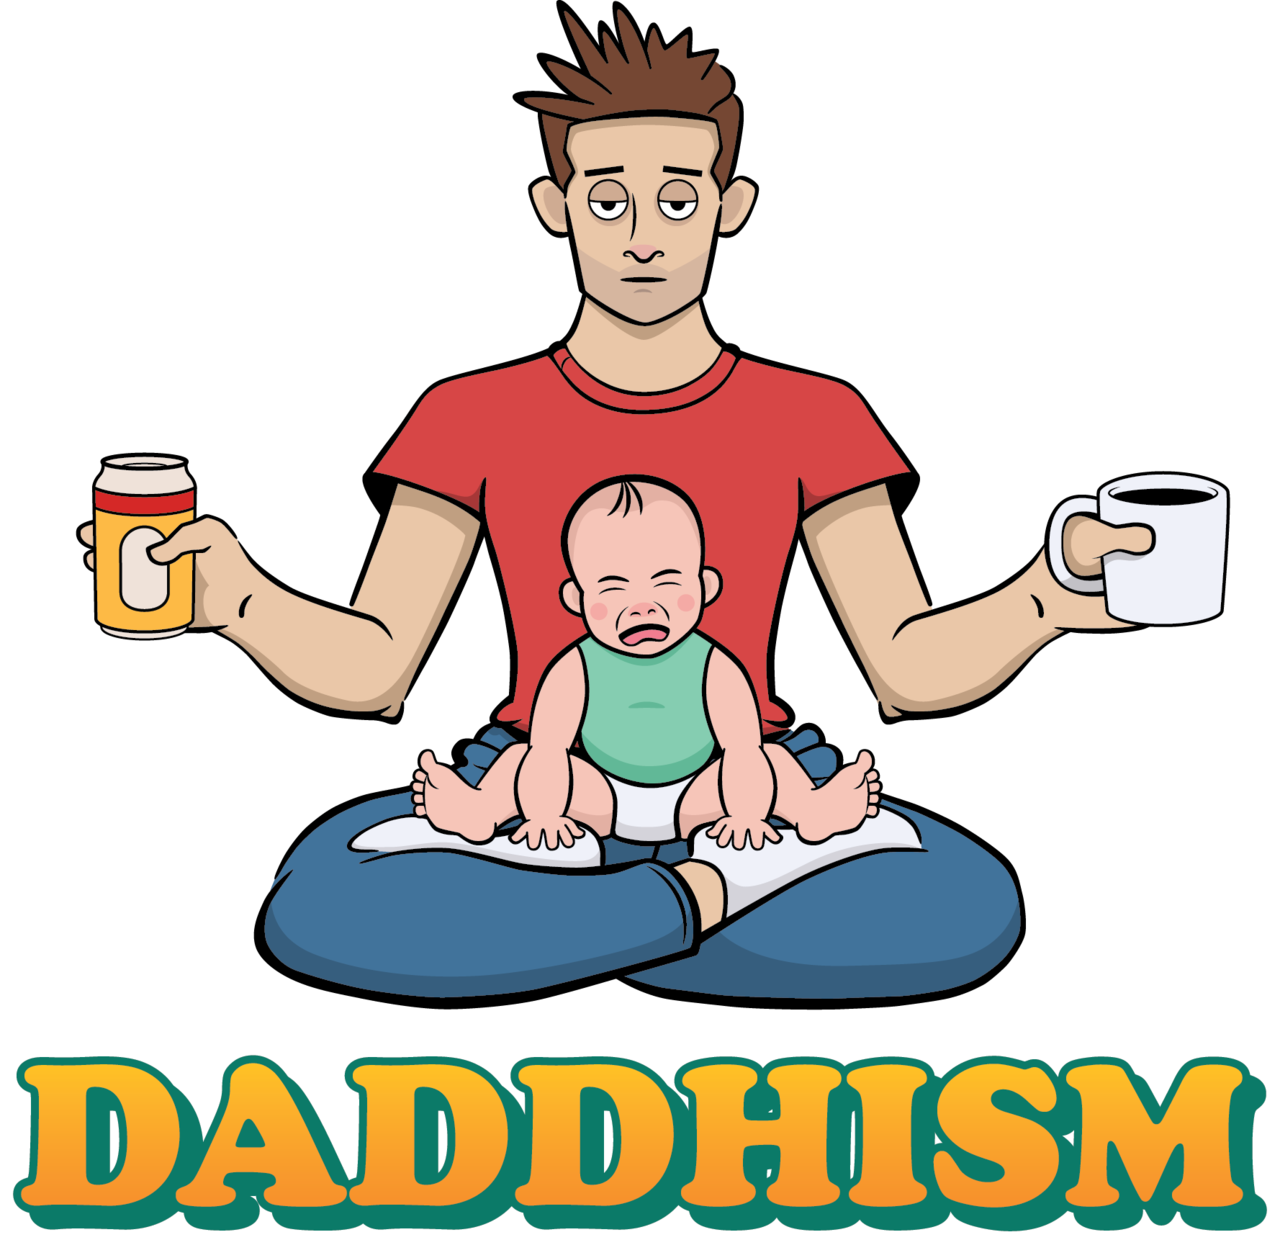 Daddhism Daily